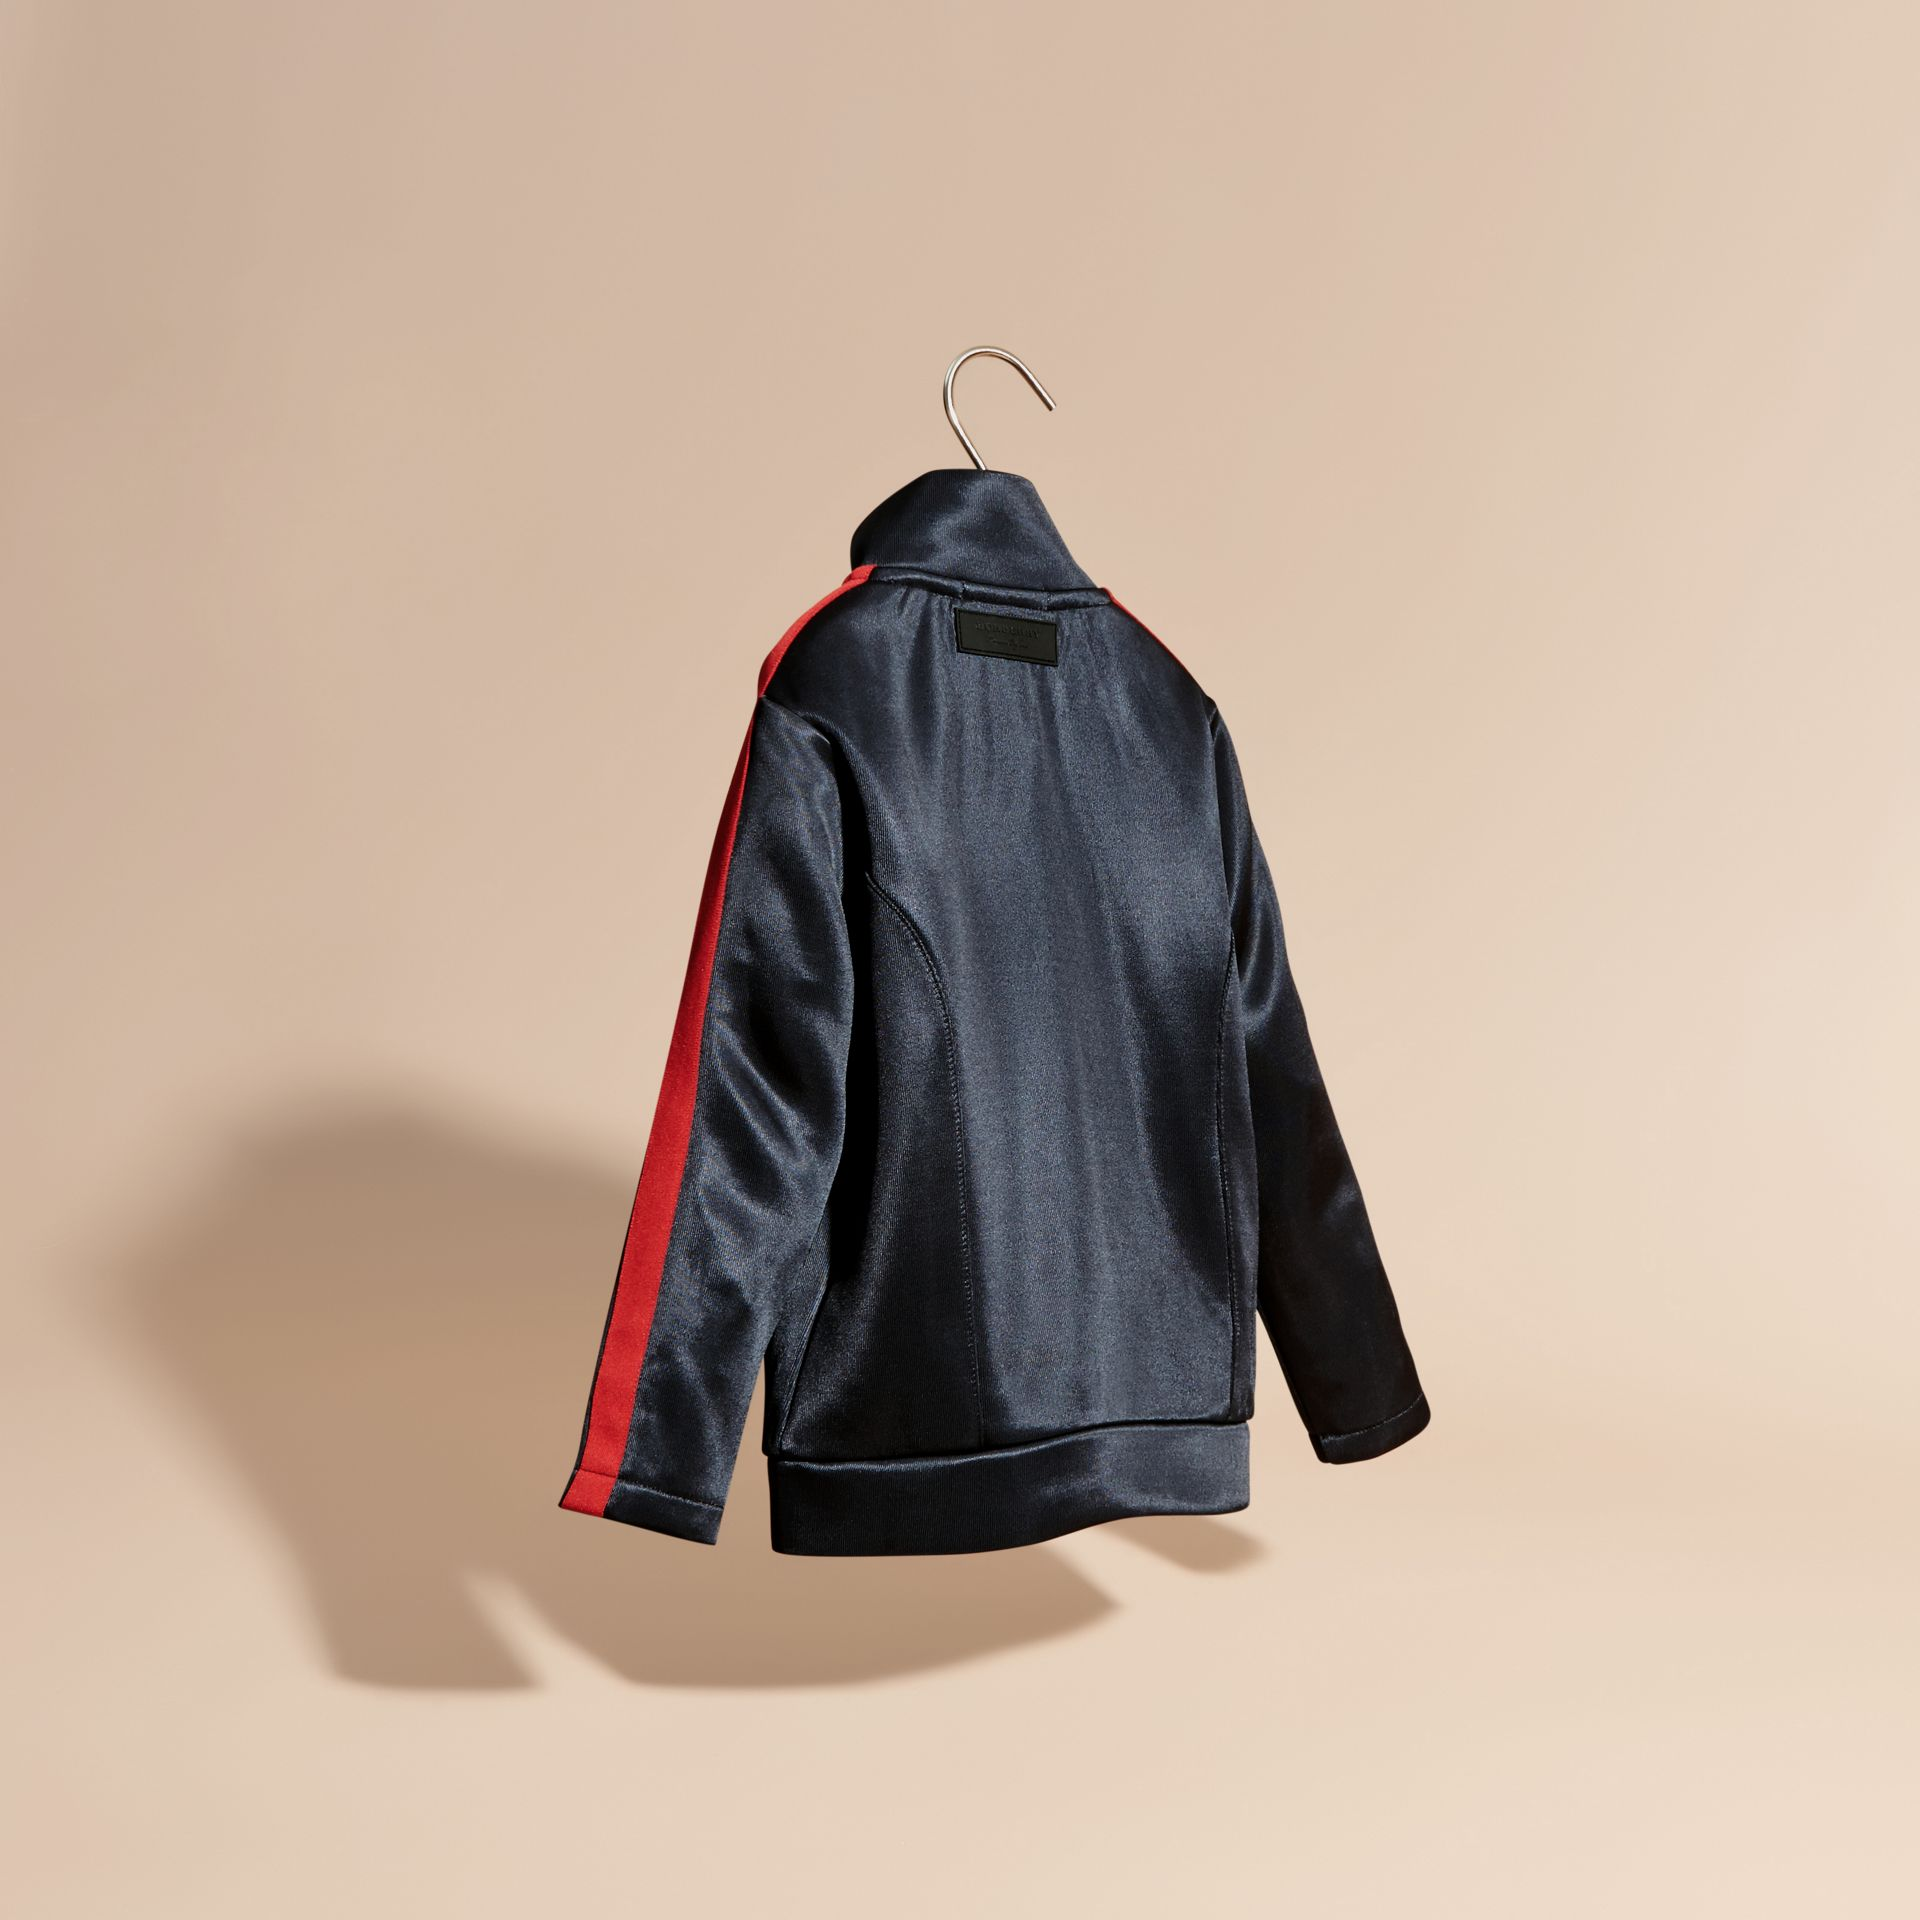 Navy High-shine Technical Track Jacket Navy - gallery image 4